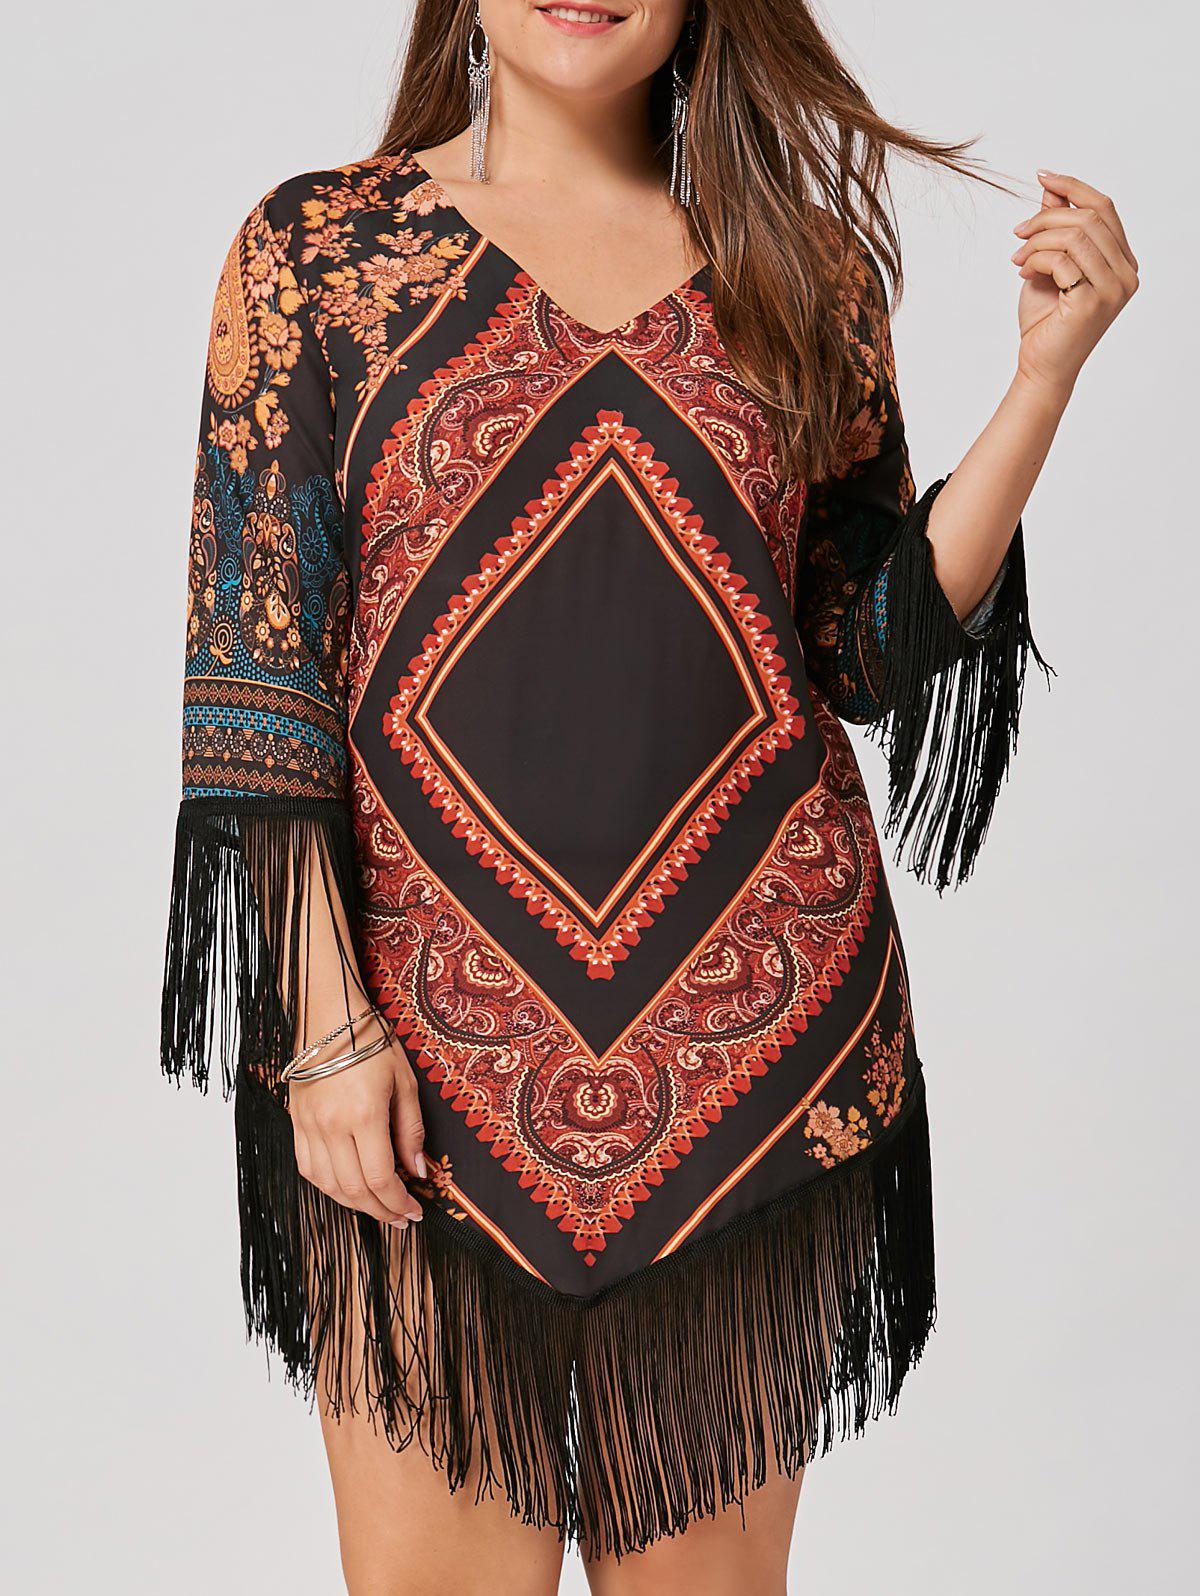 Chiffon Tassel Plus Size Tribal Printed DressWOMEN<br><br>Size: 3XL; Color: FLORAL; Style: Casual; Material: Polyester; Fabric Type: Chiffon; Silhouette: A-Line; Dresses Length: Knee-Length; Neckline: V-Neck; Sleeve Length: 3/4 Length Sleeves; Embellishment: Tassel; Pattern Type: Argyle,Geometric,Tribal Print; With Belt: No; Season: Fall; Weight: 0.2800kg; Package Contents: 1 x Dress;